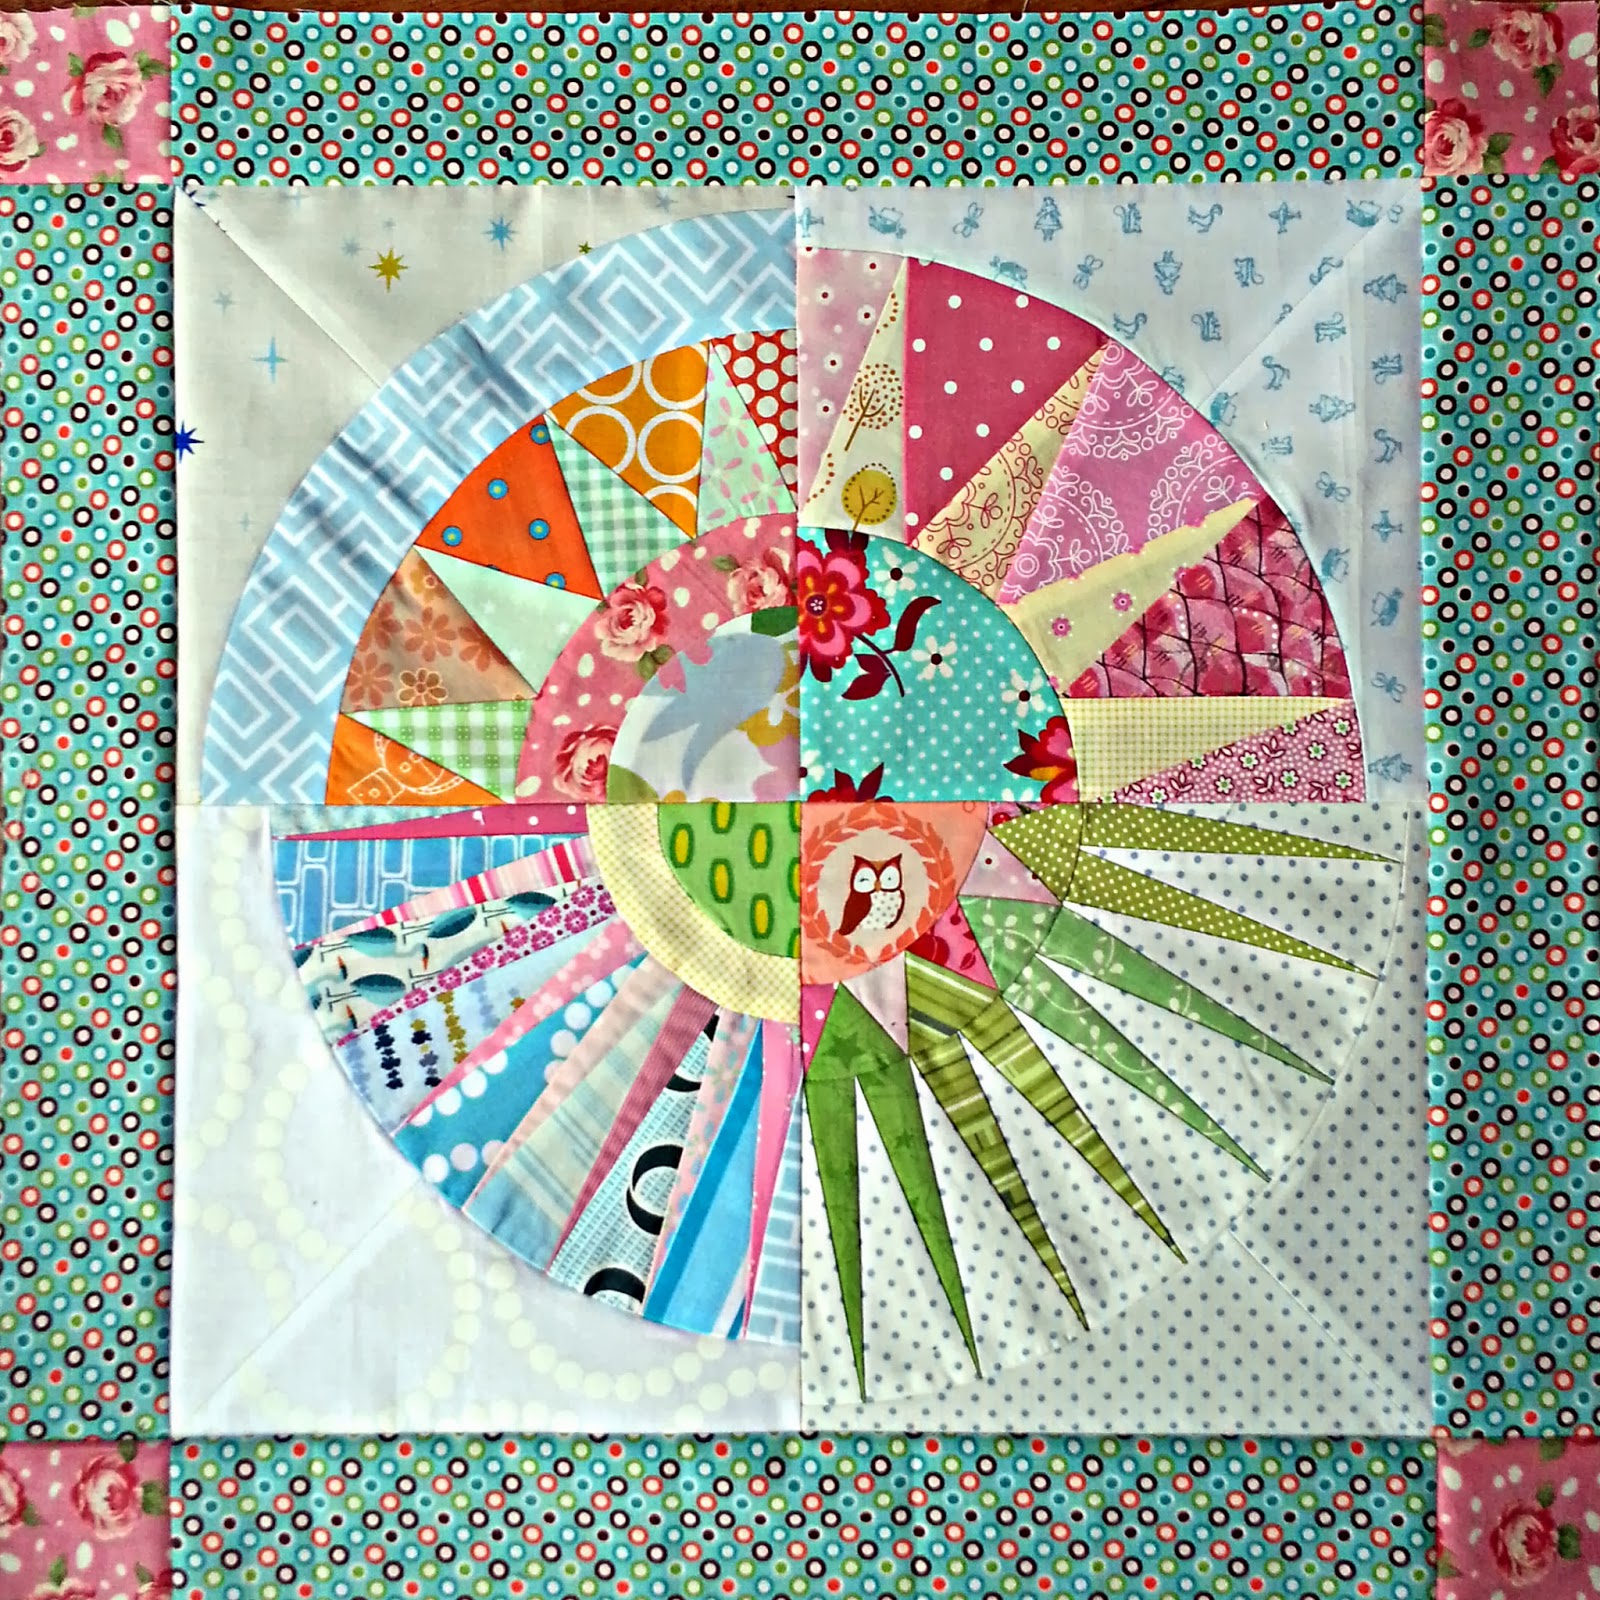 Fluffy Sheep Quilting: Tips and Tricks for Assembling a New York ... : new york beauty quilt patterns - Adamdwight.com